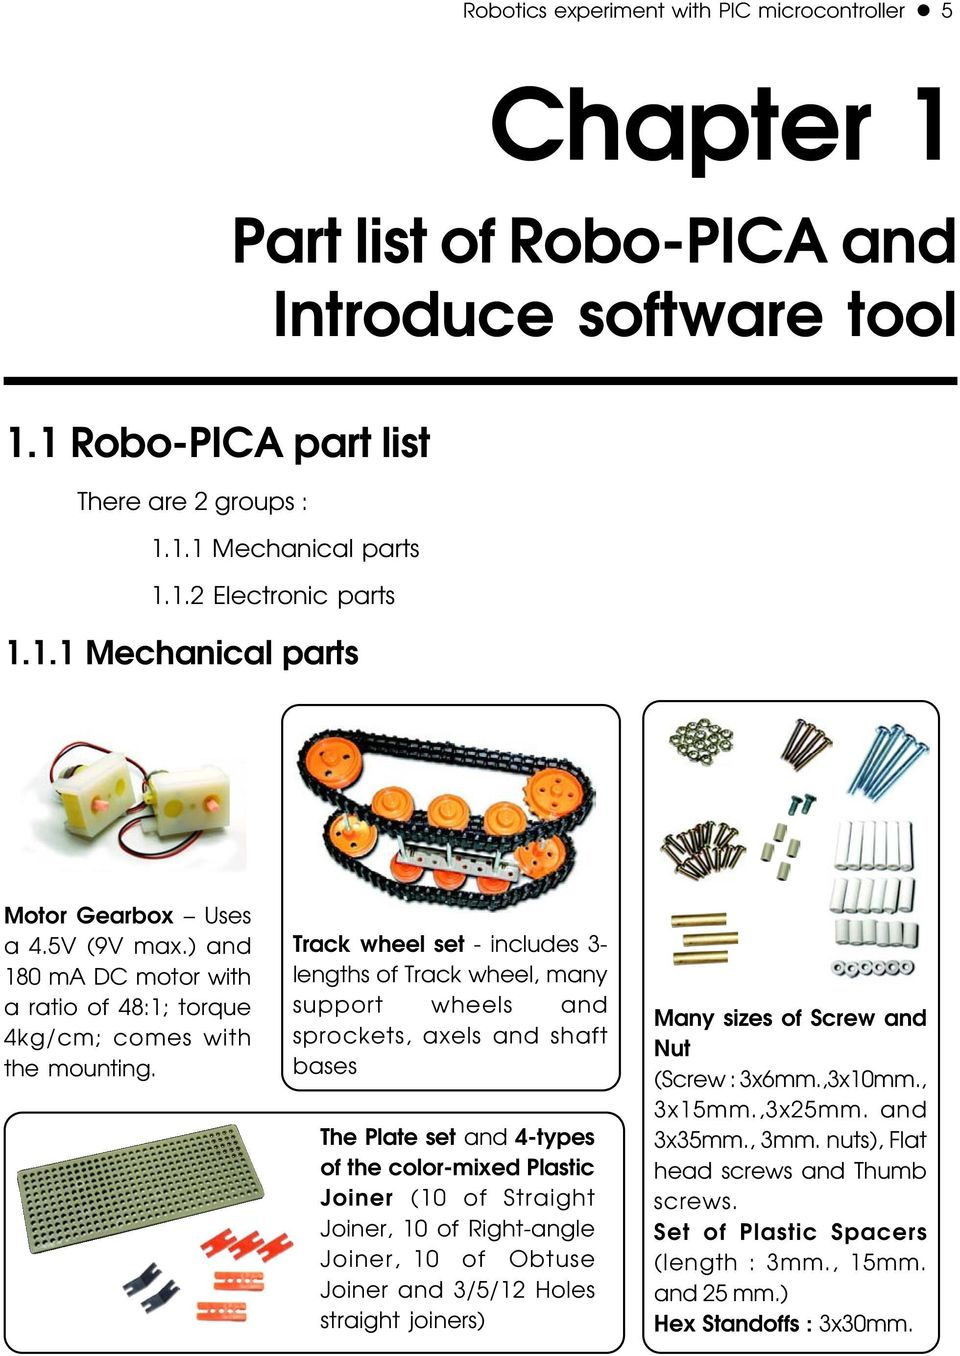 Robotics Experiment With Pic Microcontroller Pdf 3 Axis Accelerometer Using Pic16f887 Track Wheel Set Includes Lengths Of Many Support Wheels And